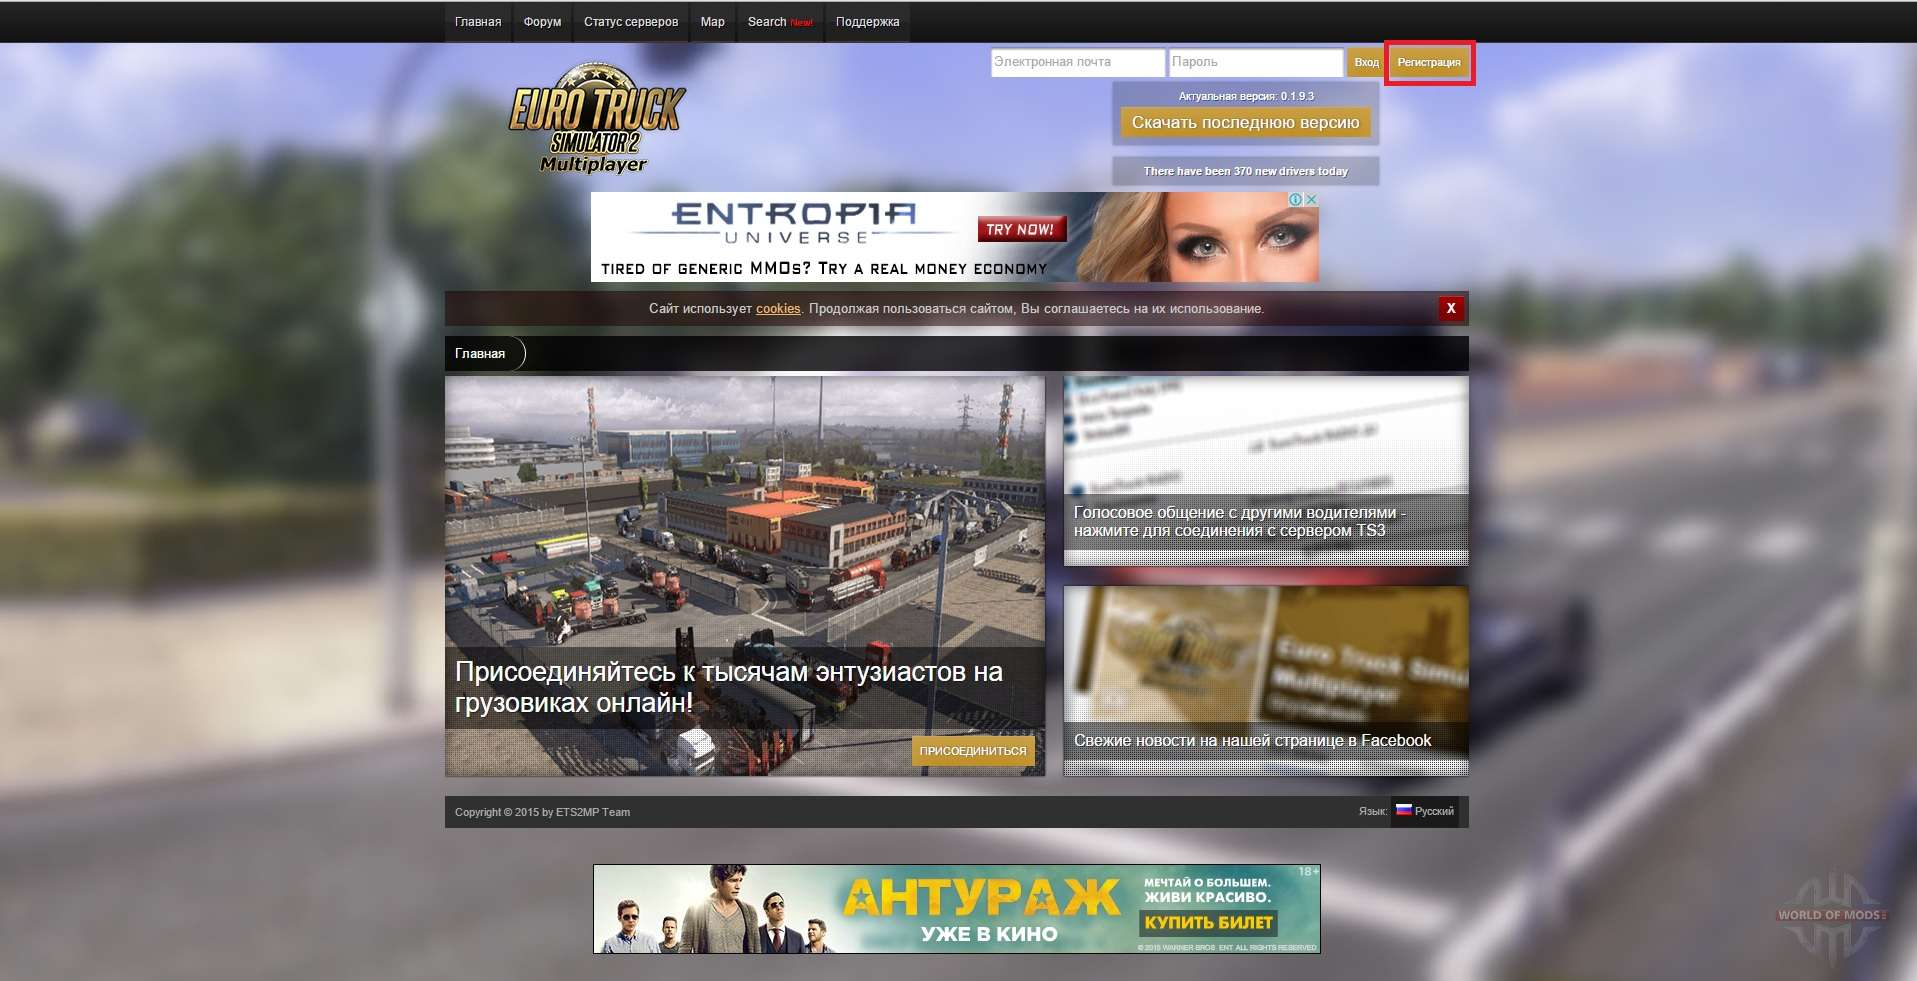 How to play Euro Truck Simulator 2 online - ETS 2 multiplayer